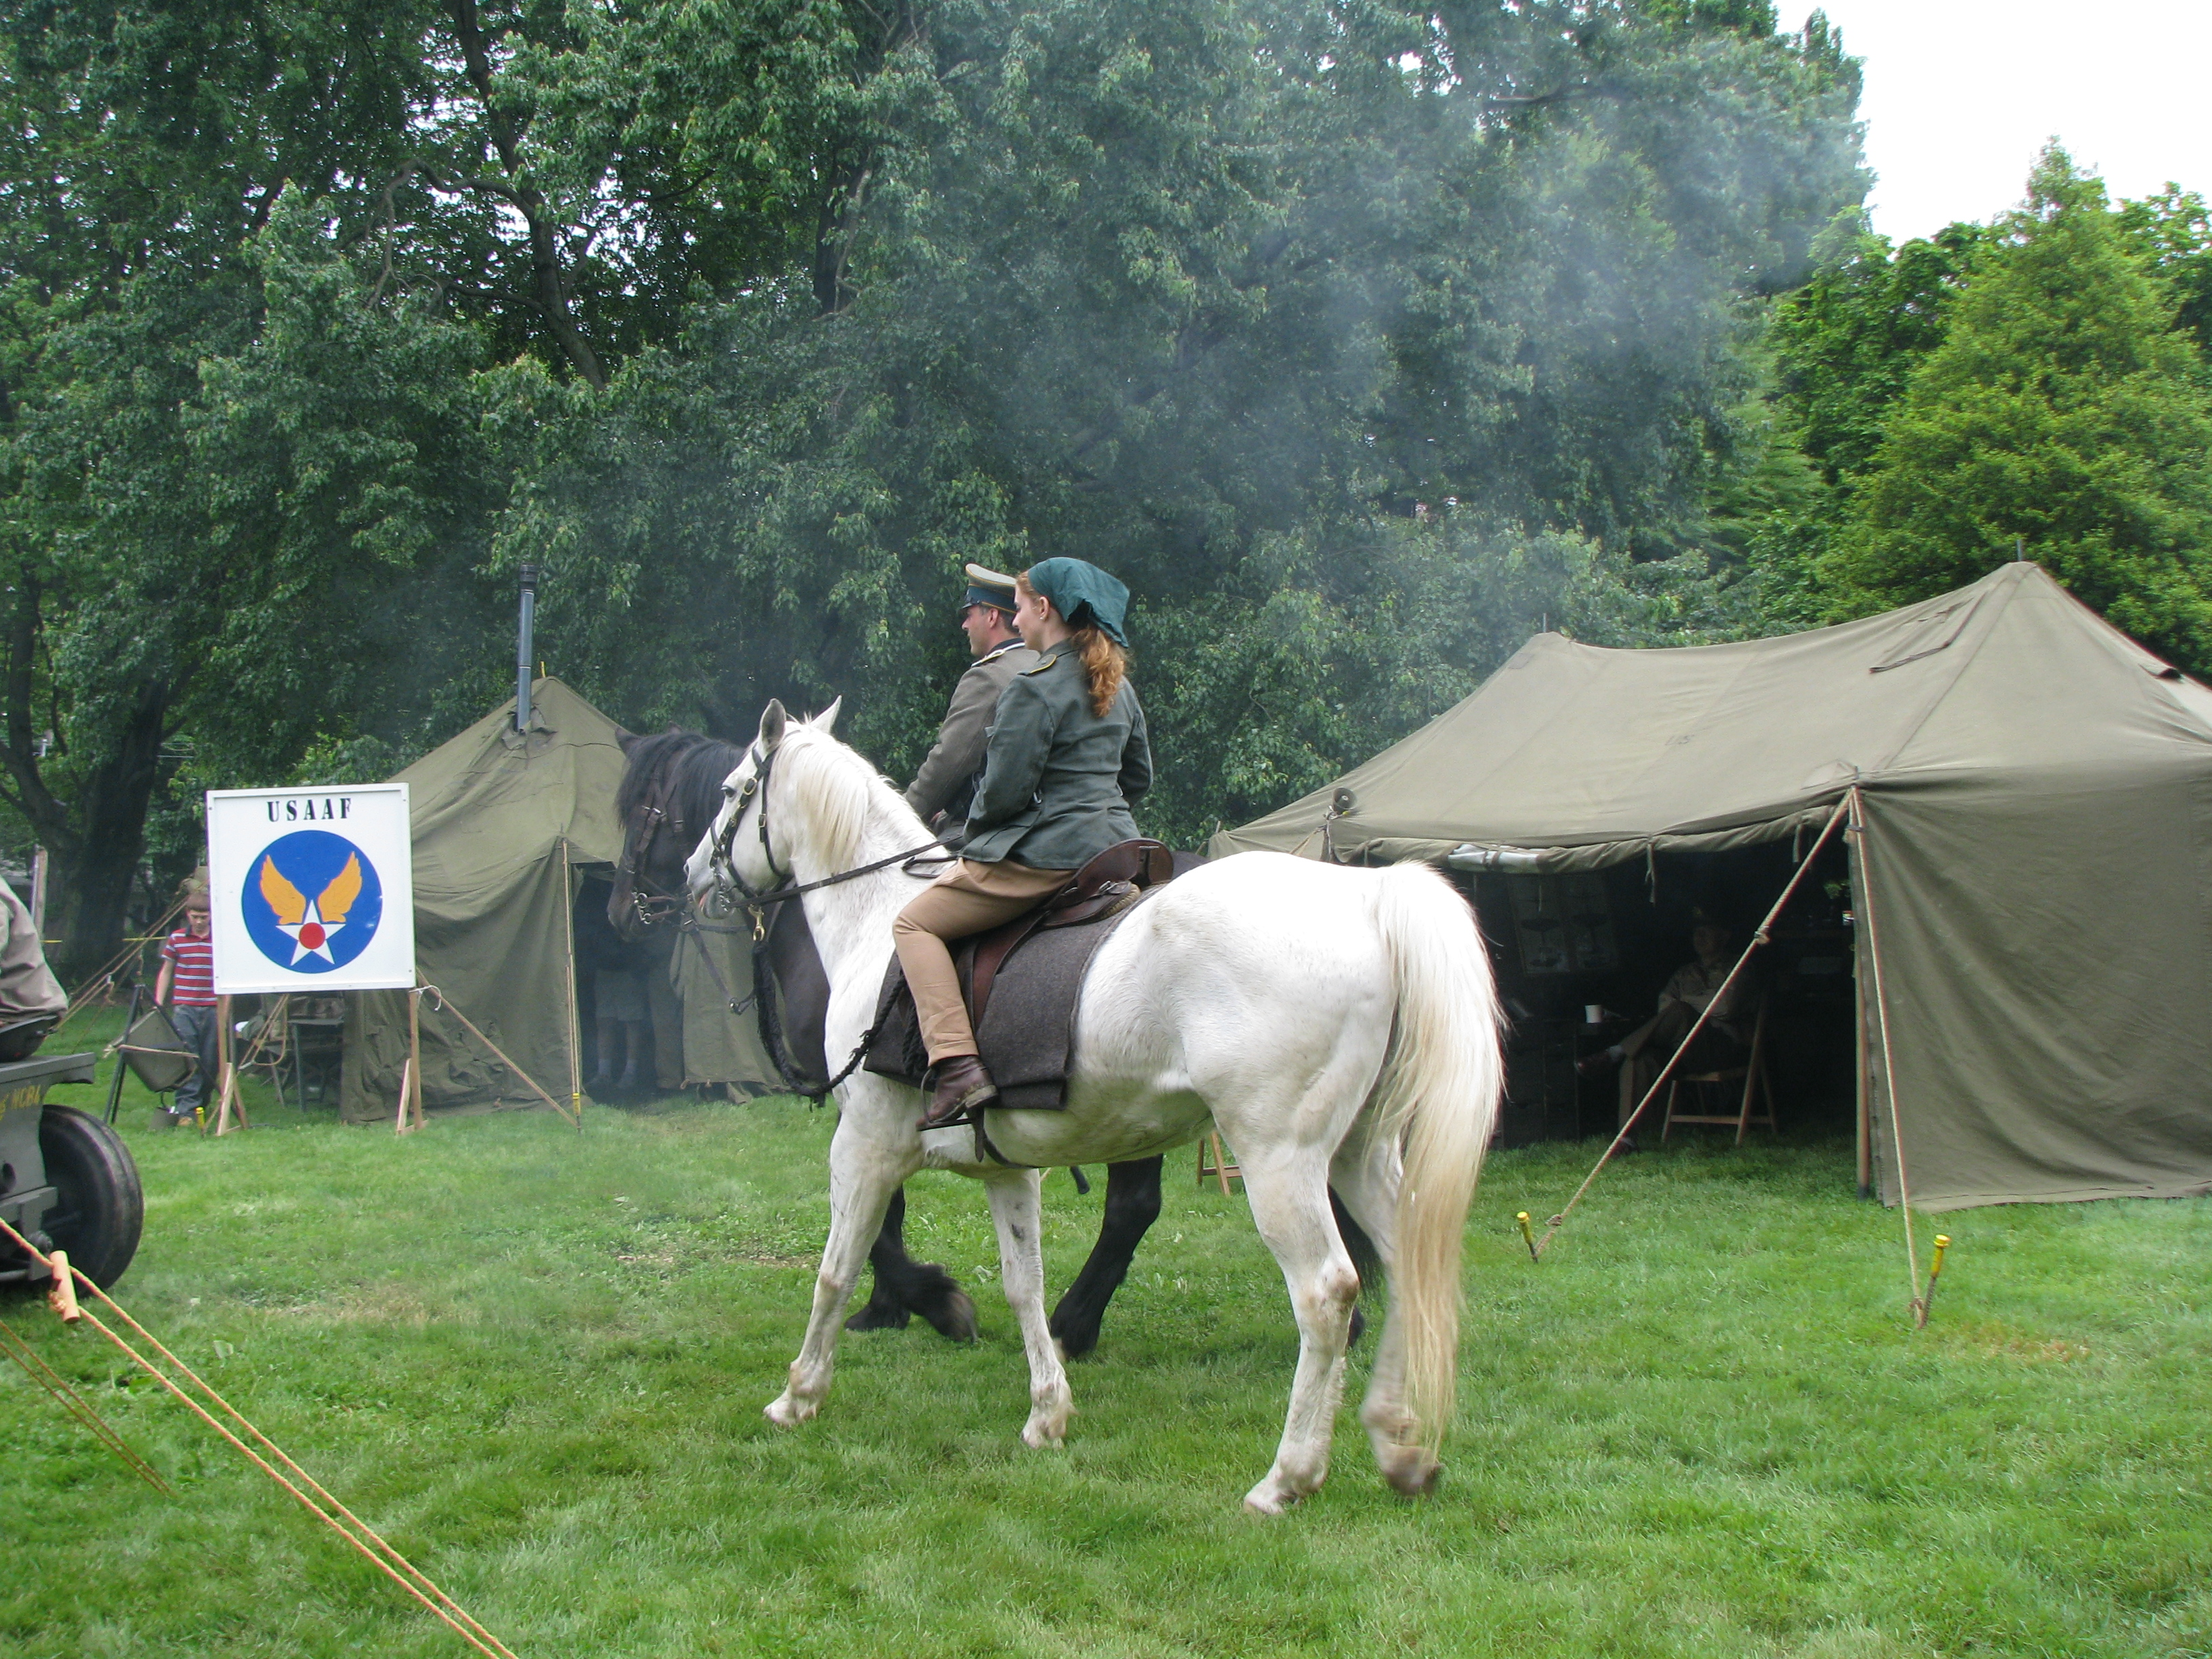 A Mounted German Troop and a German Horse trainer were also there